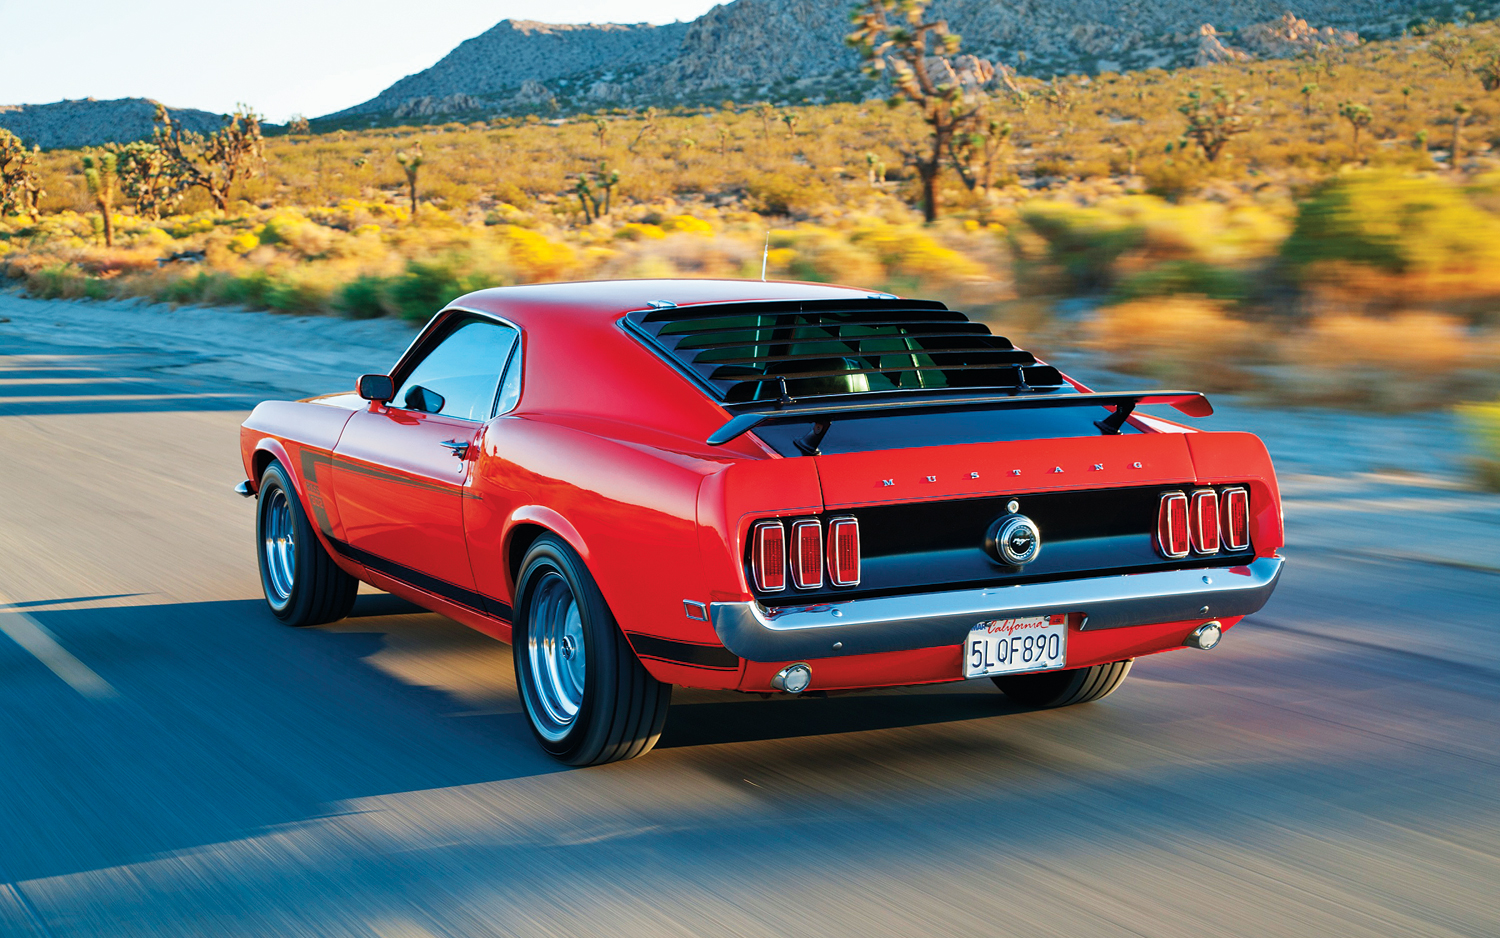 1969 ford mustang boss 302 rear left view